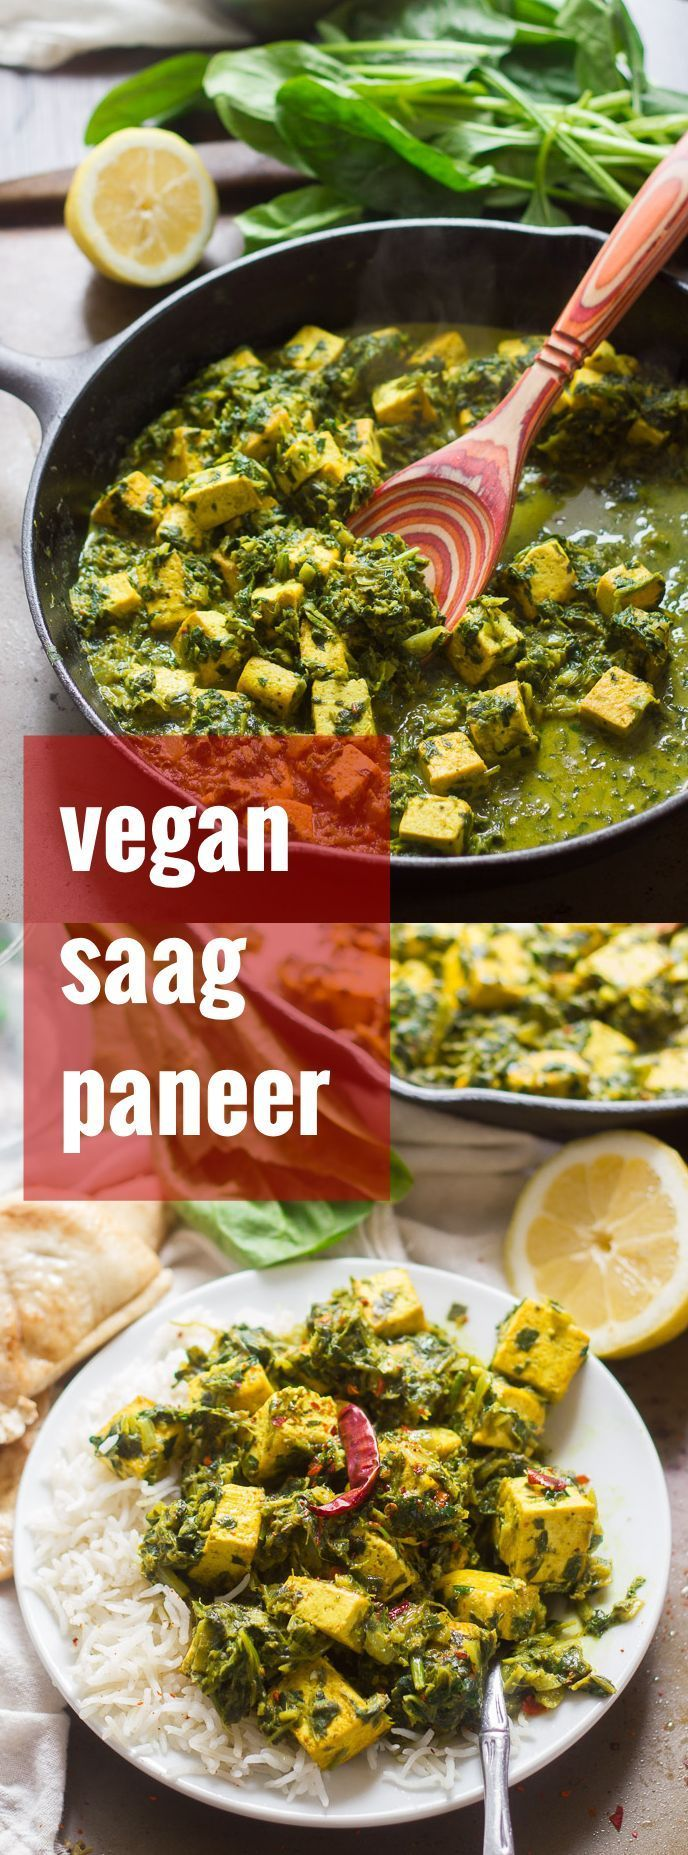 This vegan saag paneer has pan fried tofu cubes that stand in for cheese and are smothered in spicy curried spinach and coconut milk mixture.